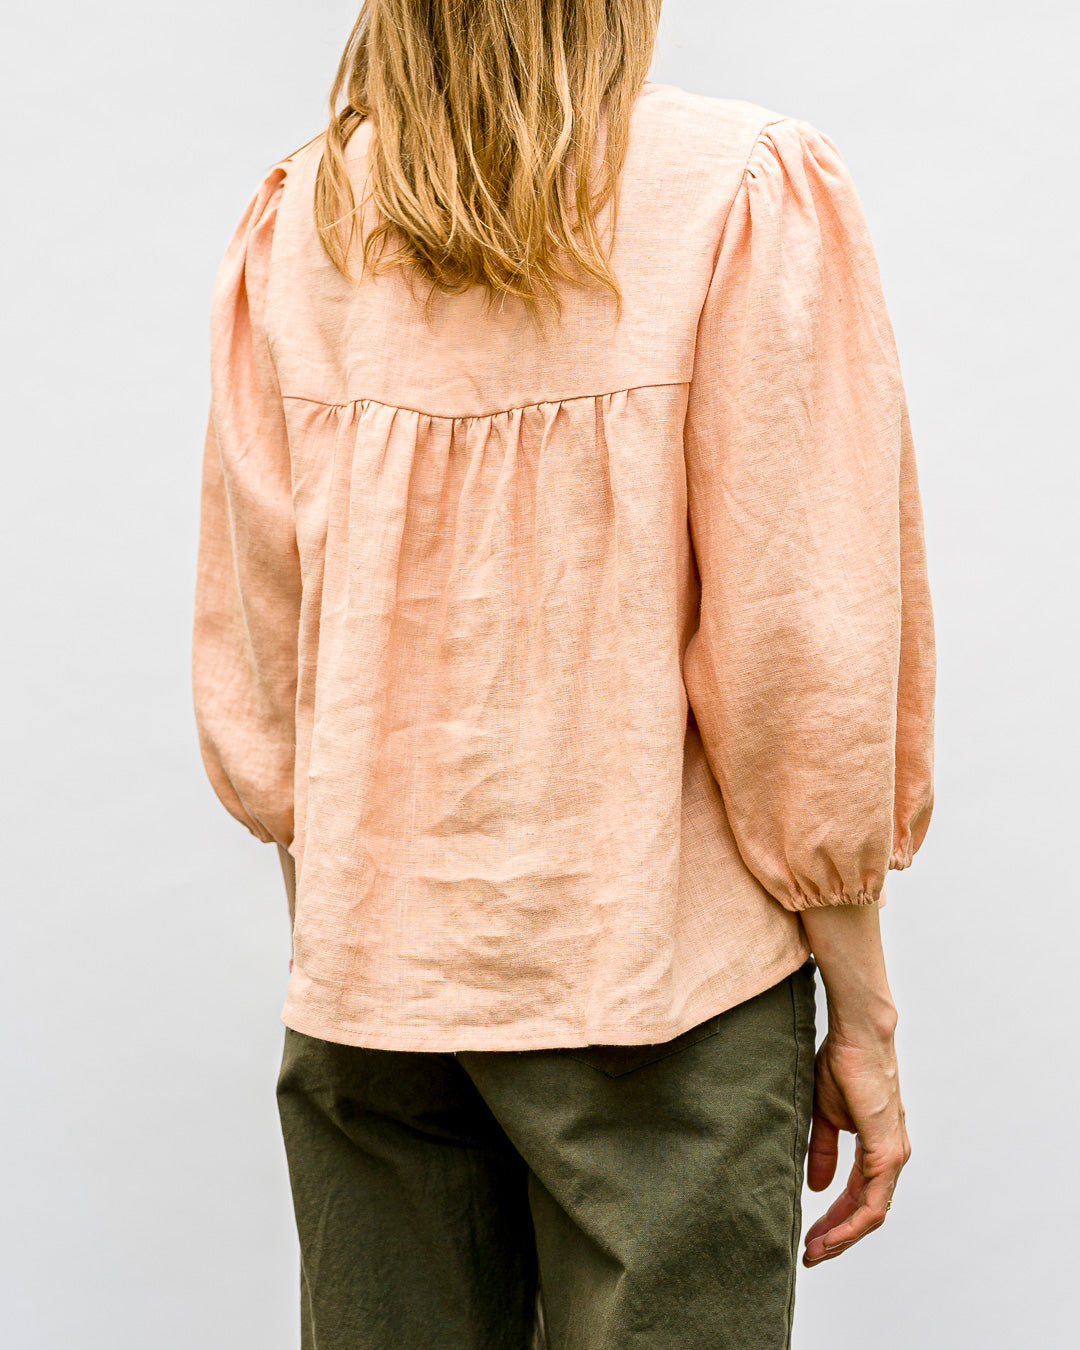 OFFON CLOTHING // Bluse Puffärmel Almost Apricot